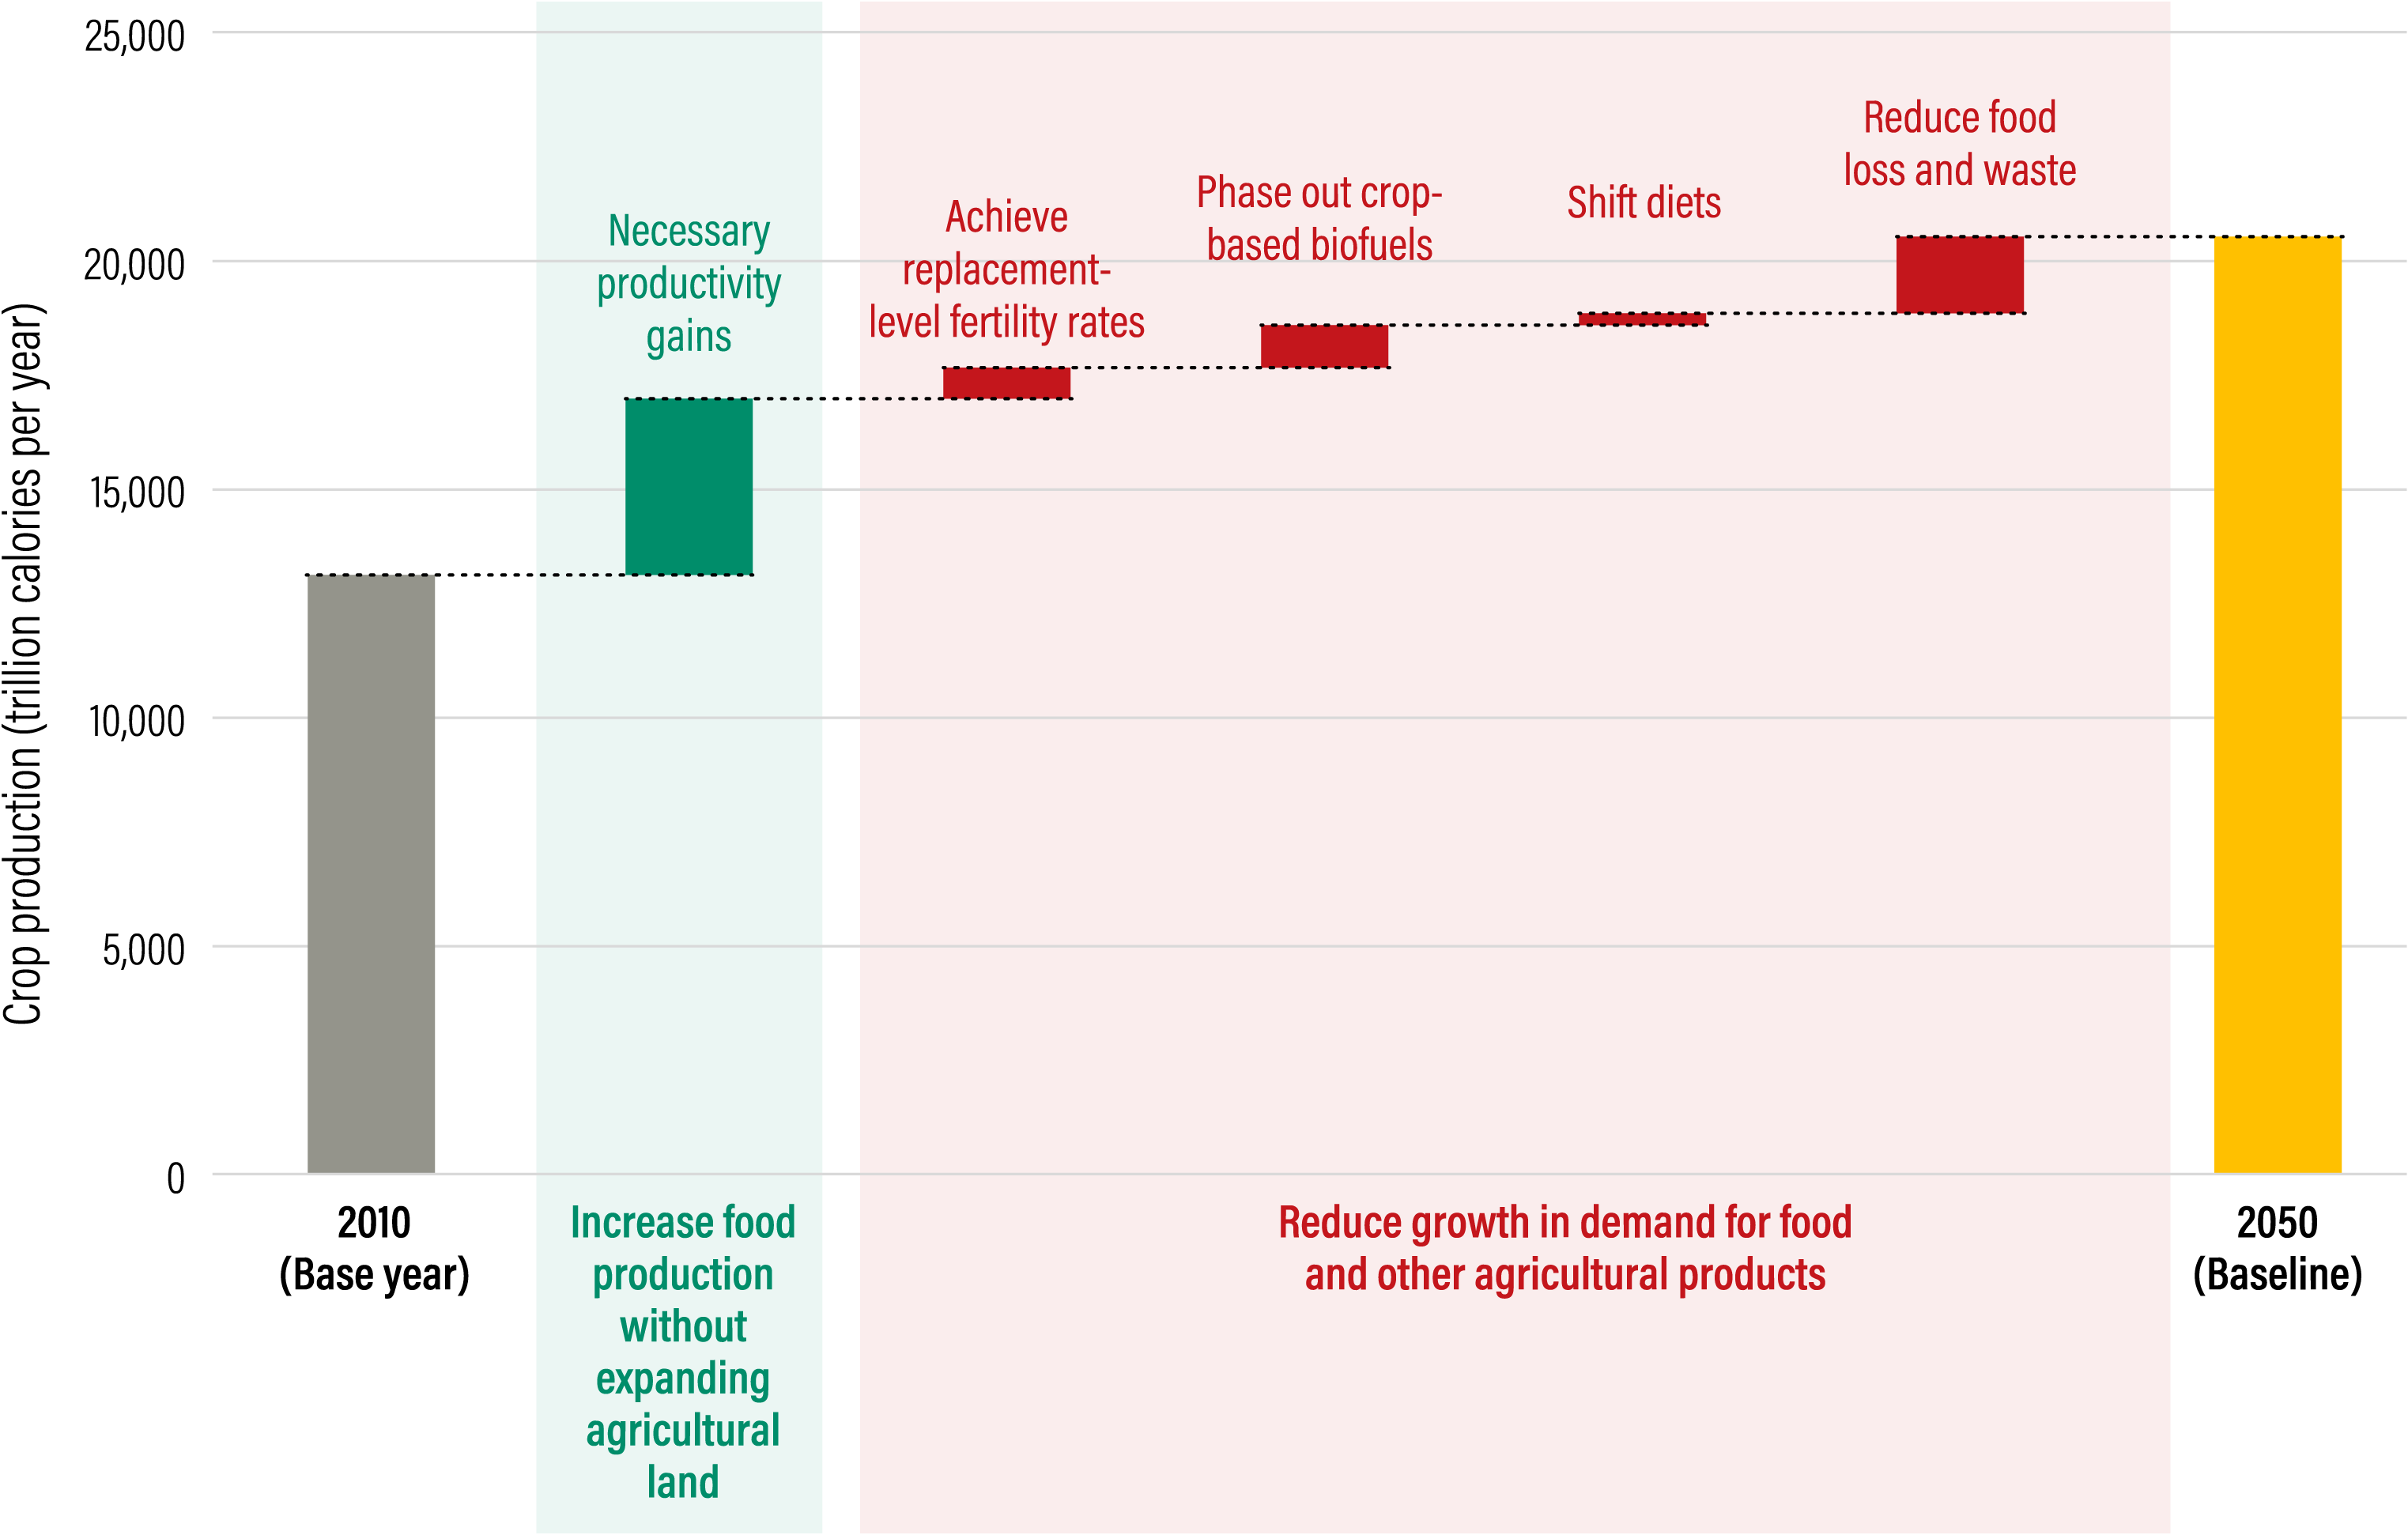 Under the Breakthrough Technologies scenario, the amount of additional food needed to feed the world in 2050 could be cut by half